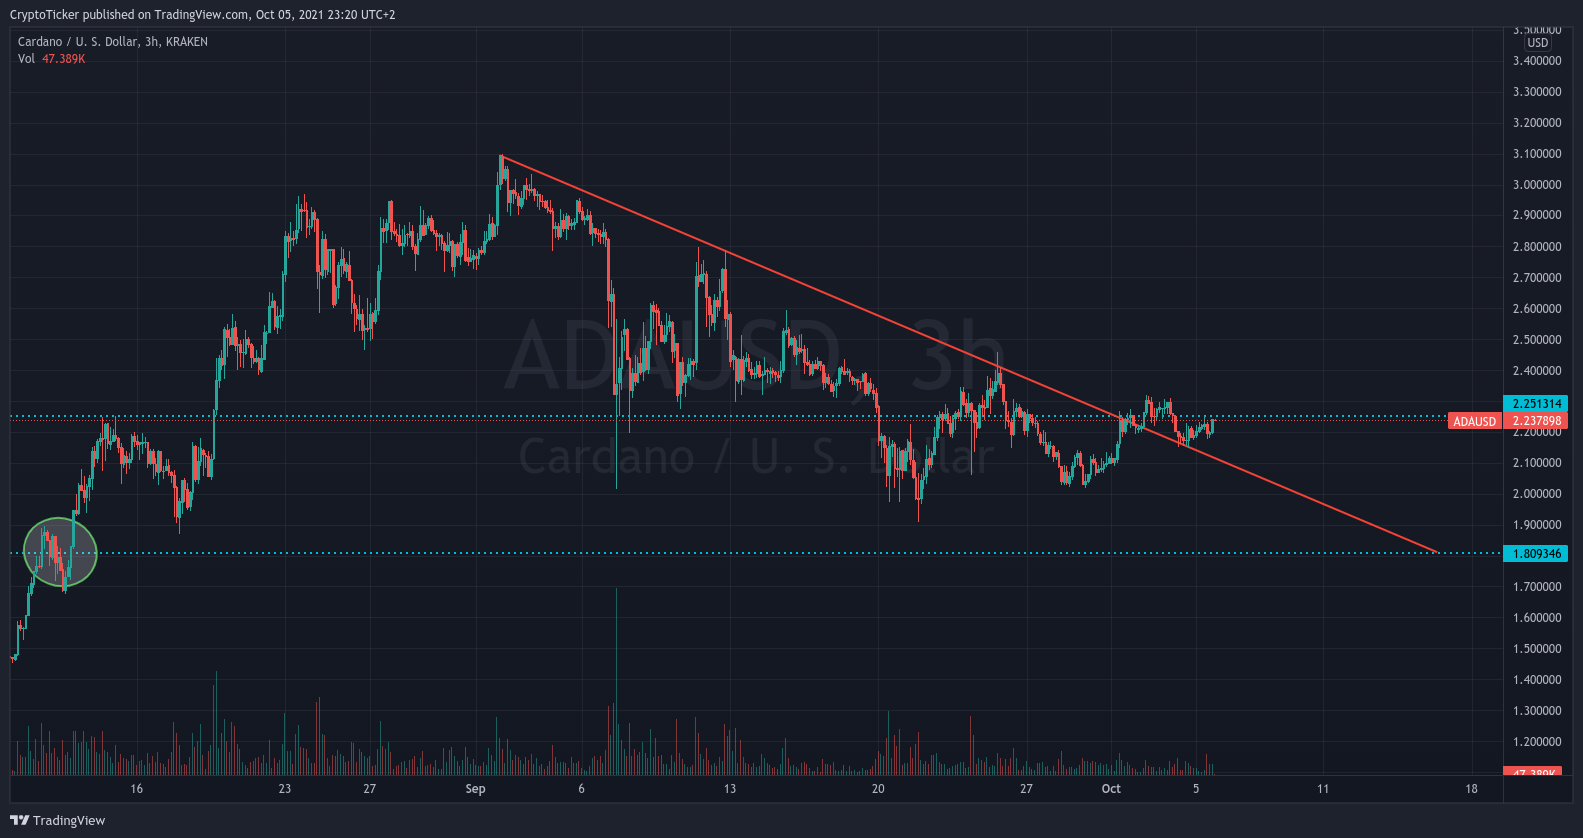 ADA/USD 3-hours chart showing the fall in prices of ADA